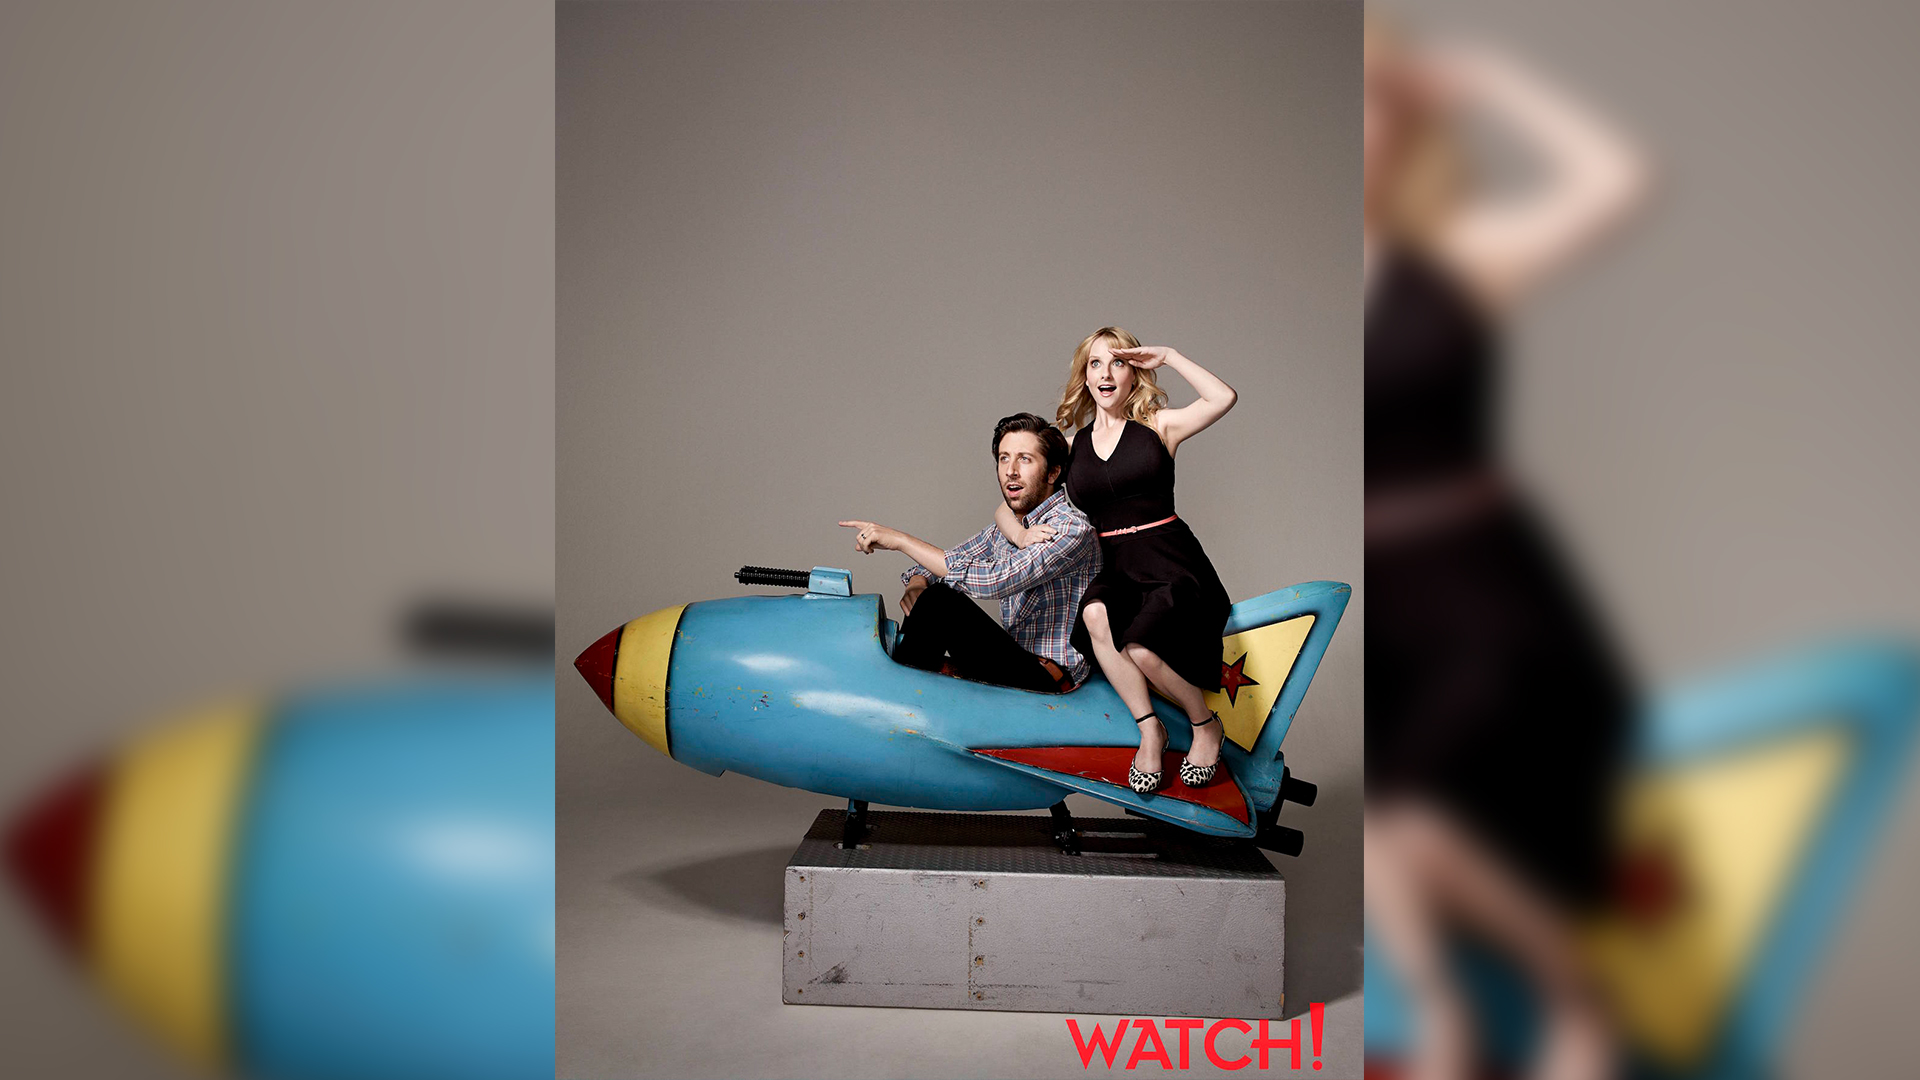 Simon Helberg and Melissa Rauch are having a blast